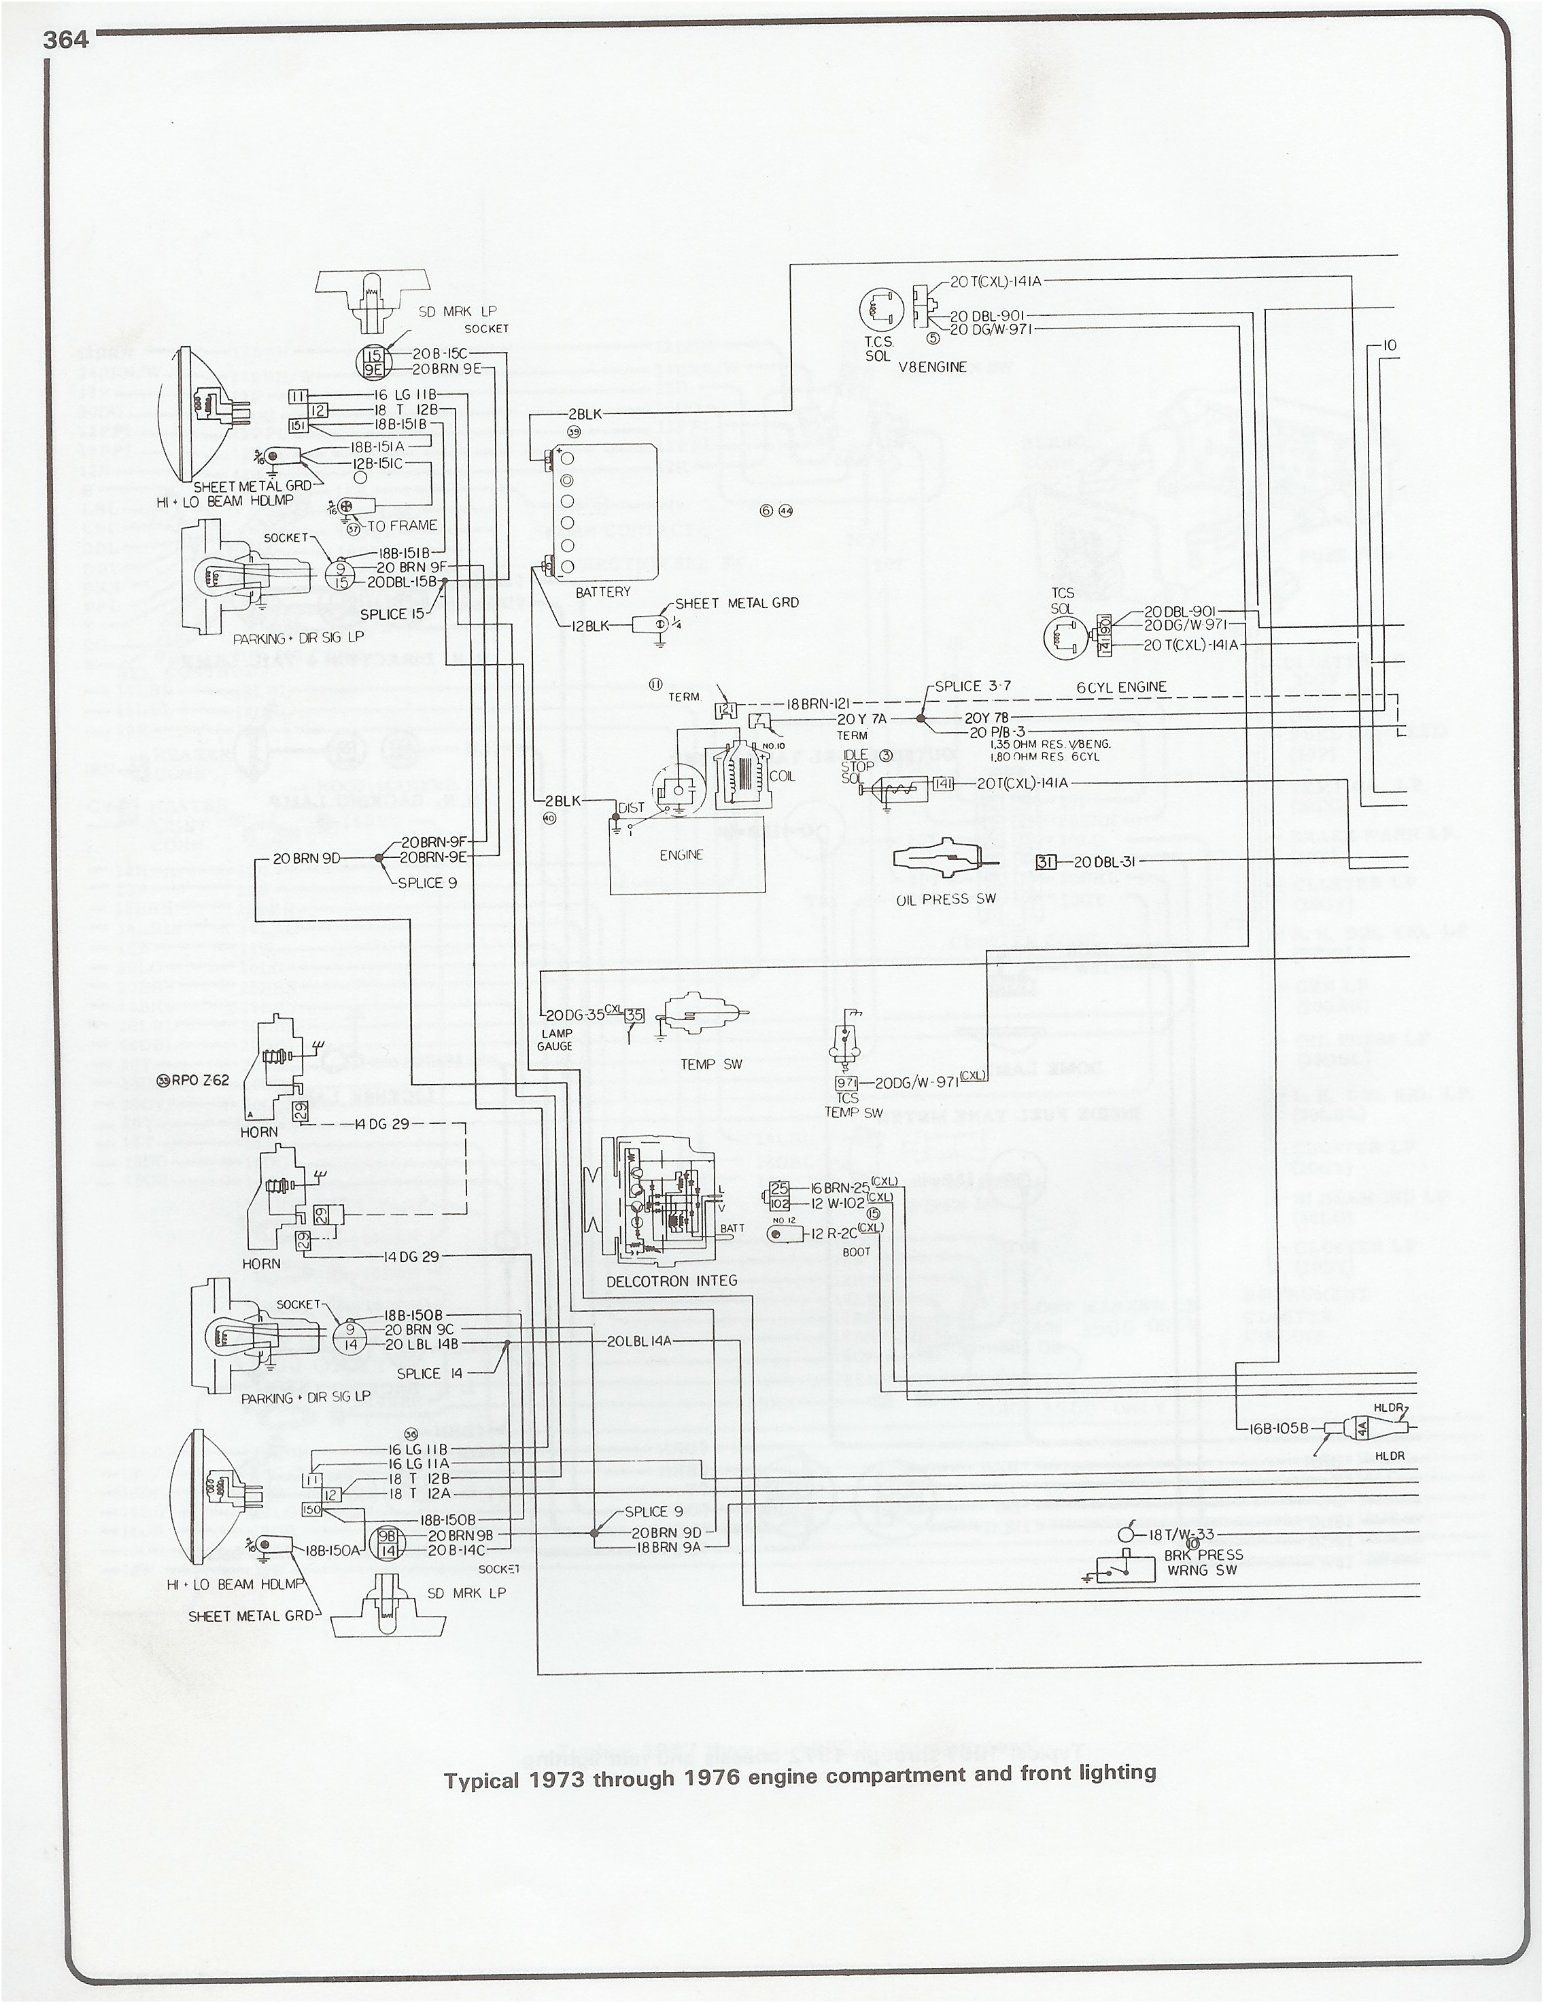 b46c0c014ab7ae7becc2b916945faf15 wiring diagram 1973 1976 chevy pickup chevy wiring diagram Jeep Cherokee Sport Wiring Diagram at bayanpartner.co